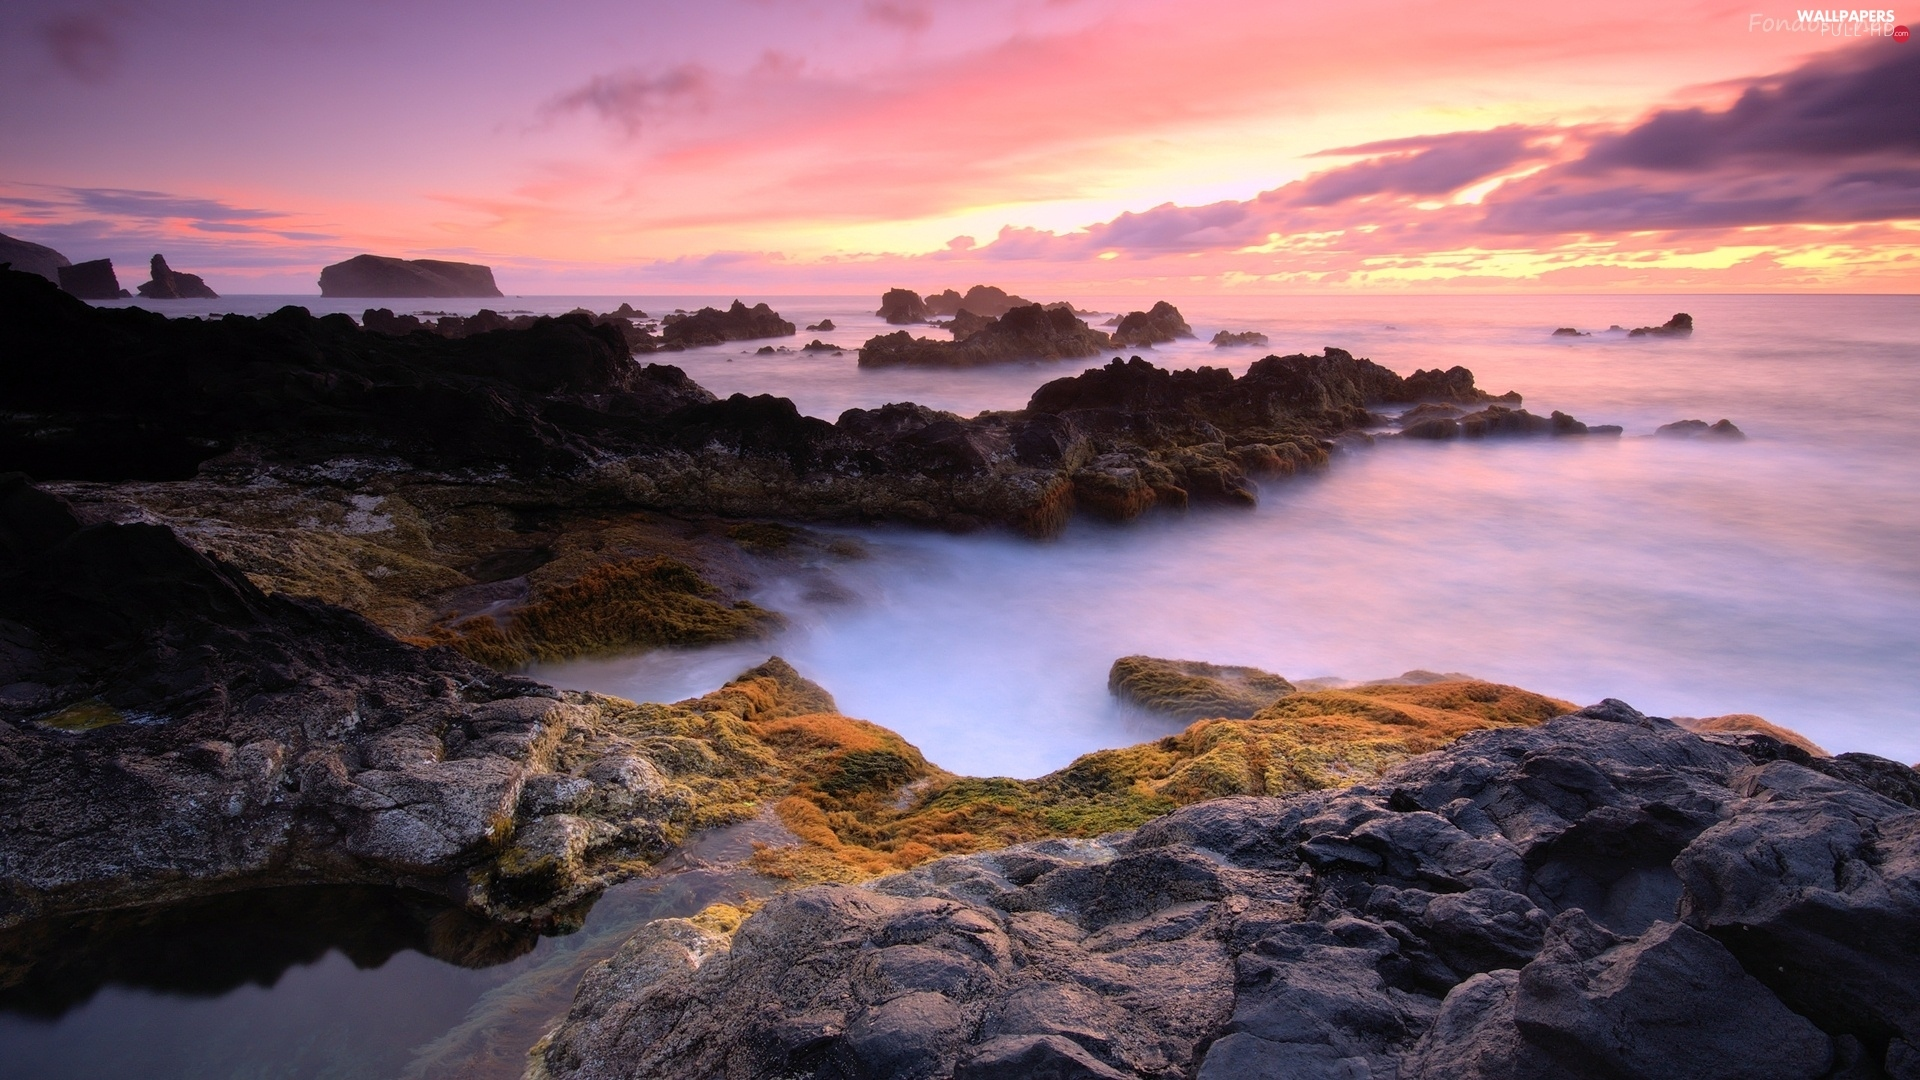 Azores, Great Sunsets, sea, Portugal, rocks